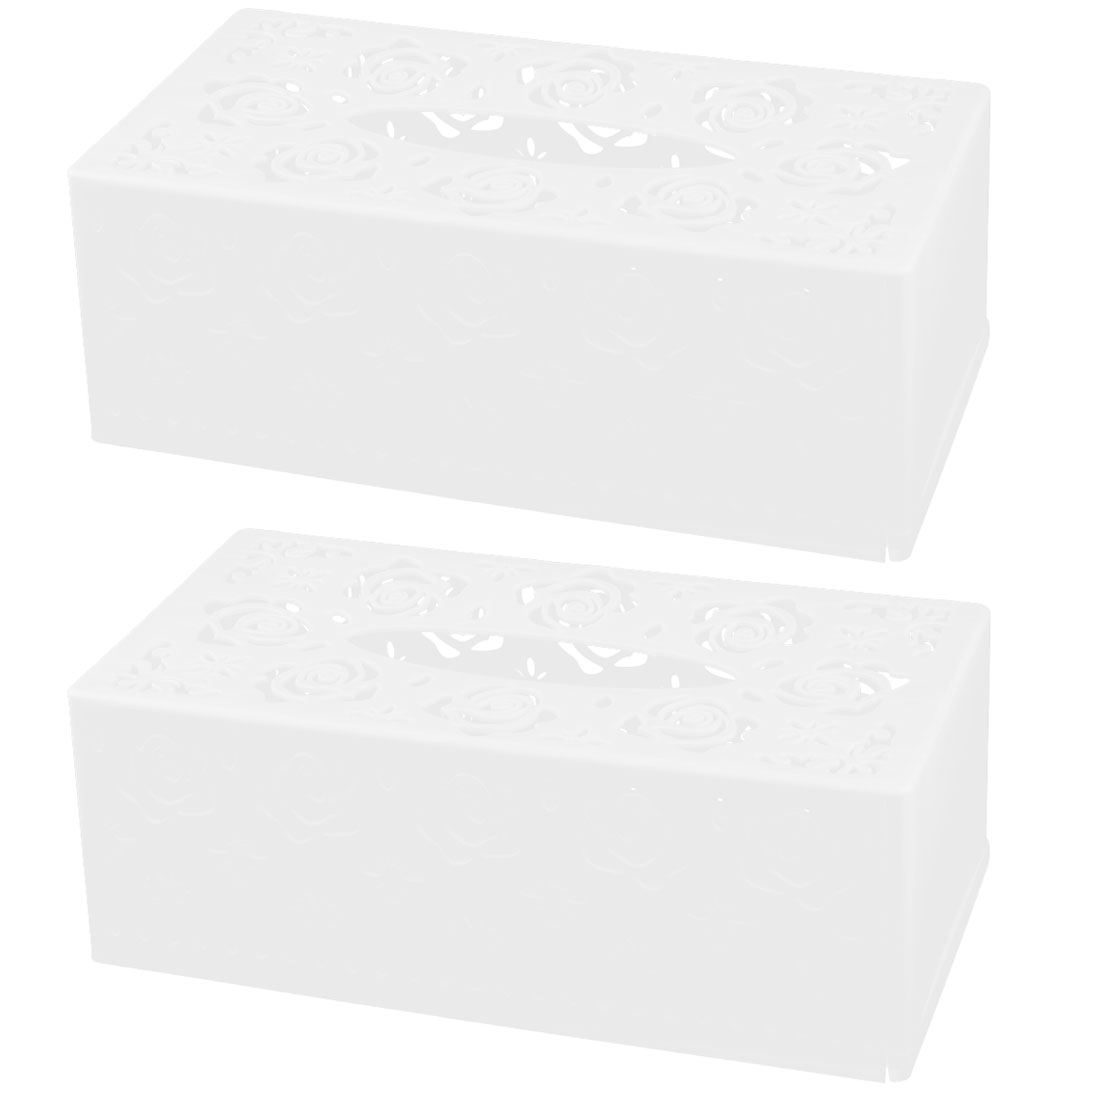 Home Plastic Rectangle Hollow Out Design Tissue Box Case Holder Organizer White 2pcs